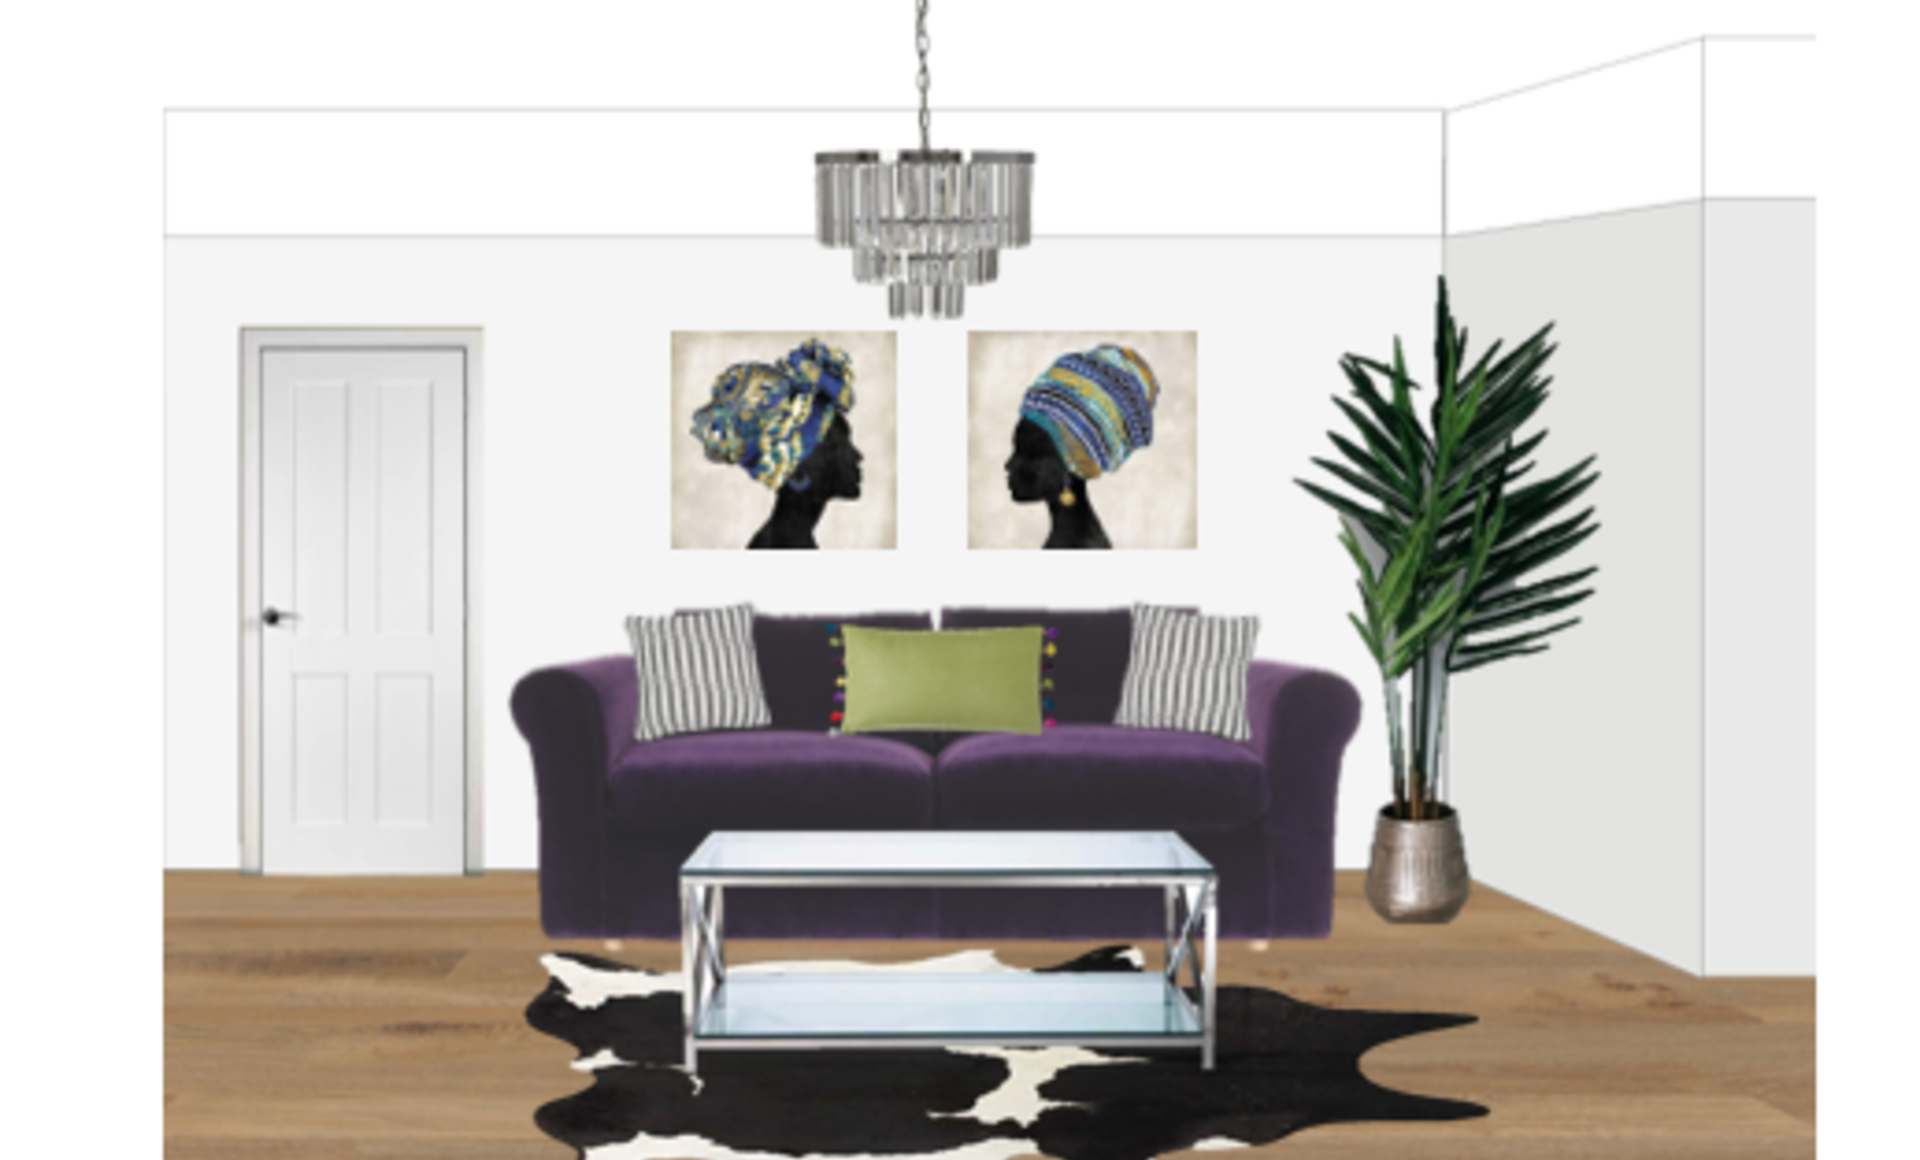 A 2D visual showing a Victorian living room modernised with colour and eclectic features